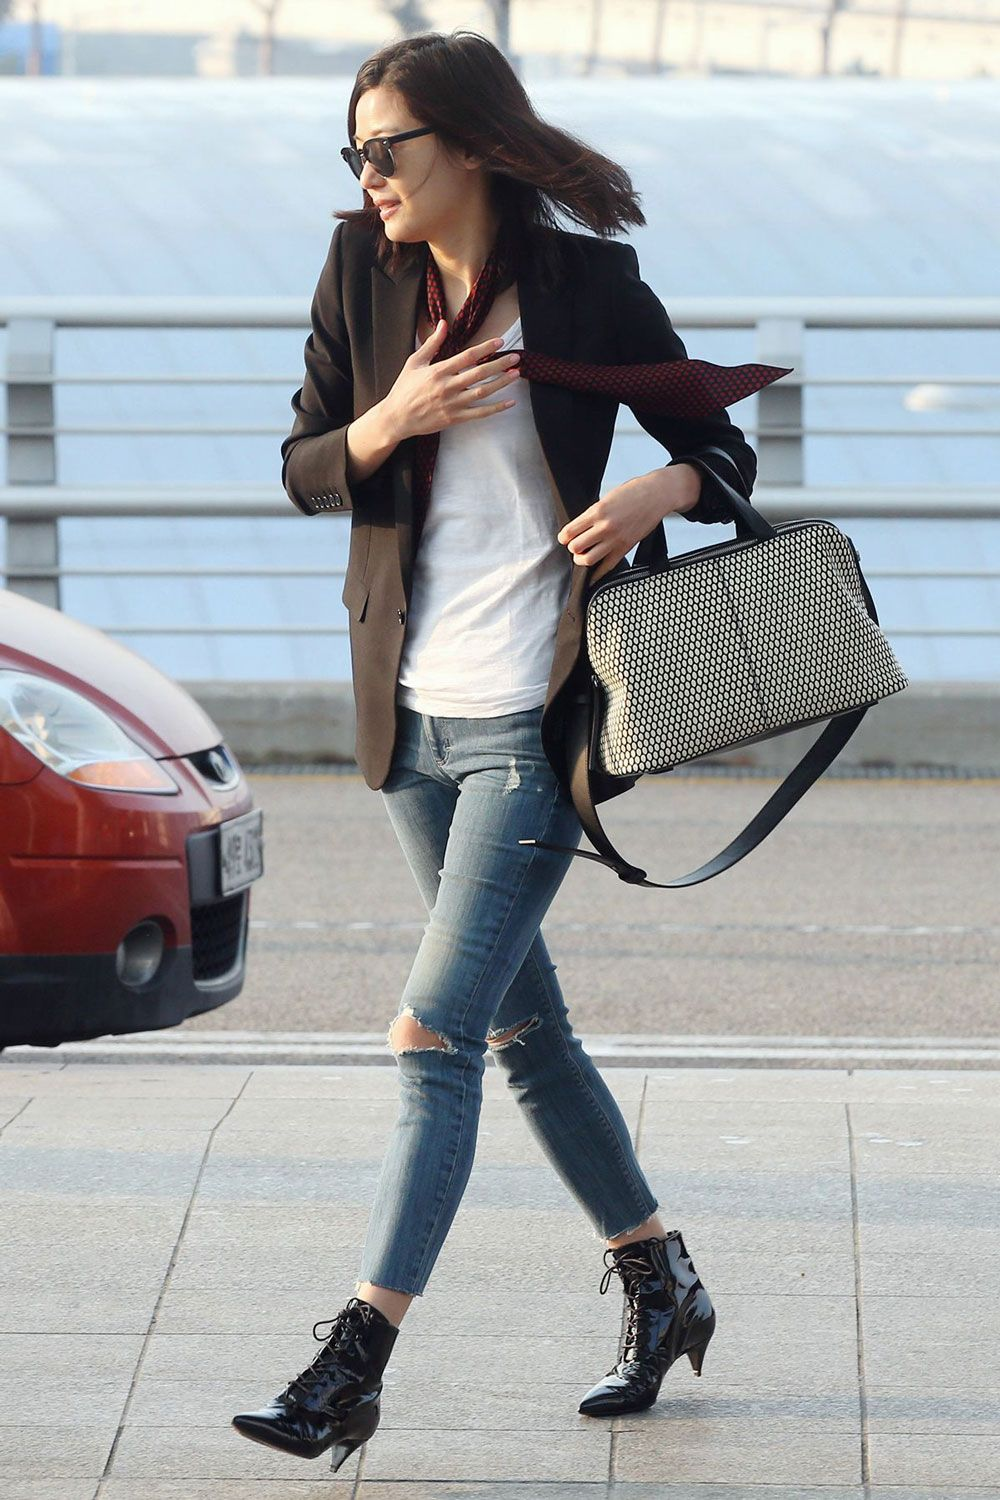 25 best airport style winter outfits ... - fashion-women.com